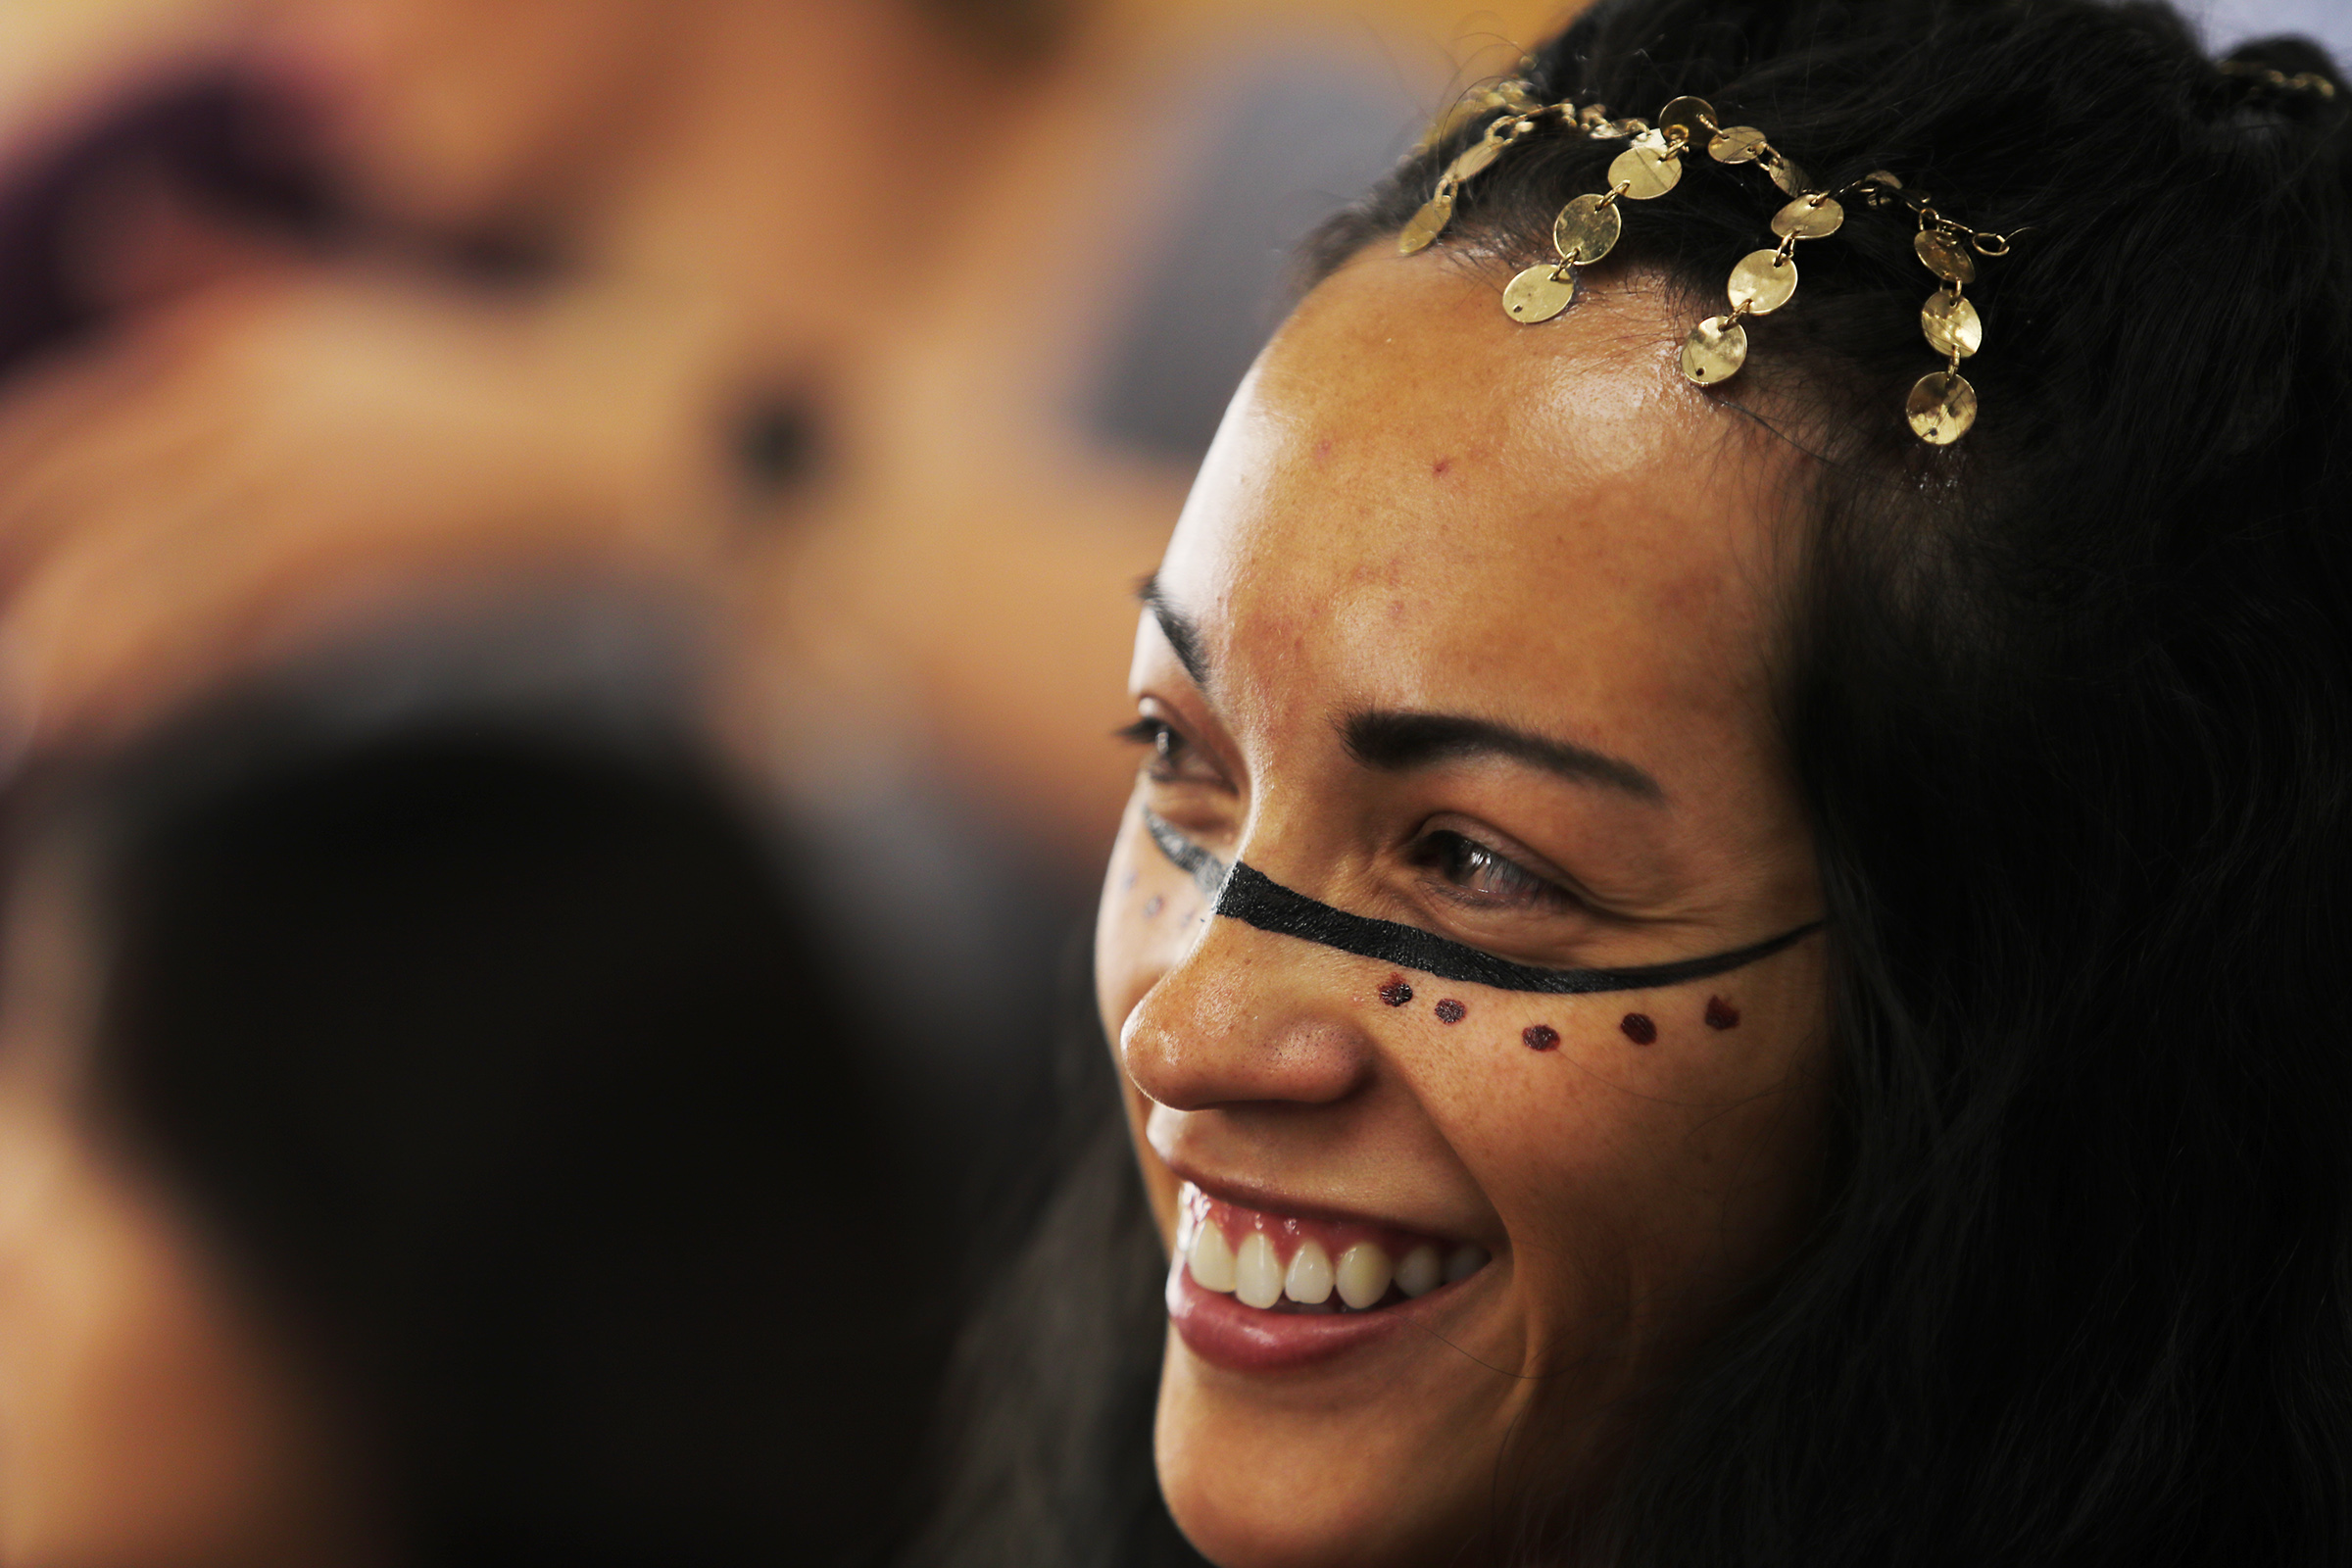 Cecilia Armenta, a dancer in King Noah's court, waits to have some makeup done prior to filming for the Book of Mormon videos series in Provo, Utah, at the Motion Picture Studio on Tuesday, Sept. 3, 2019.